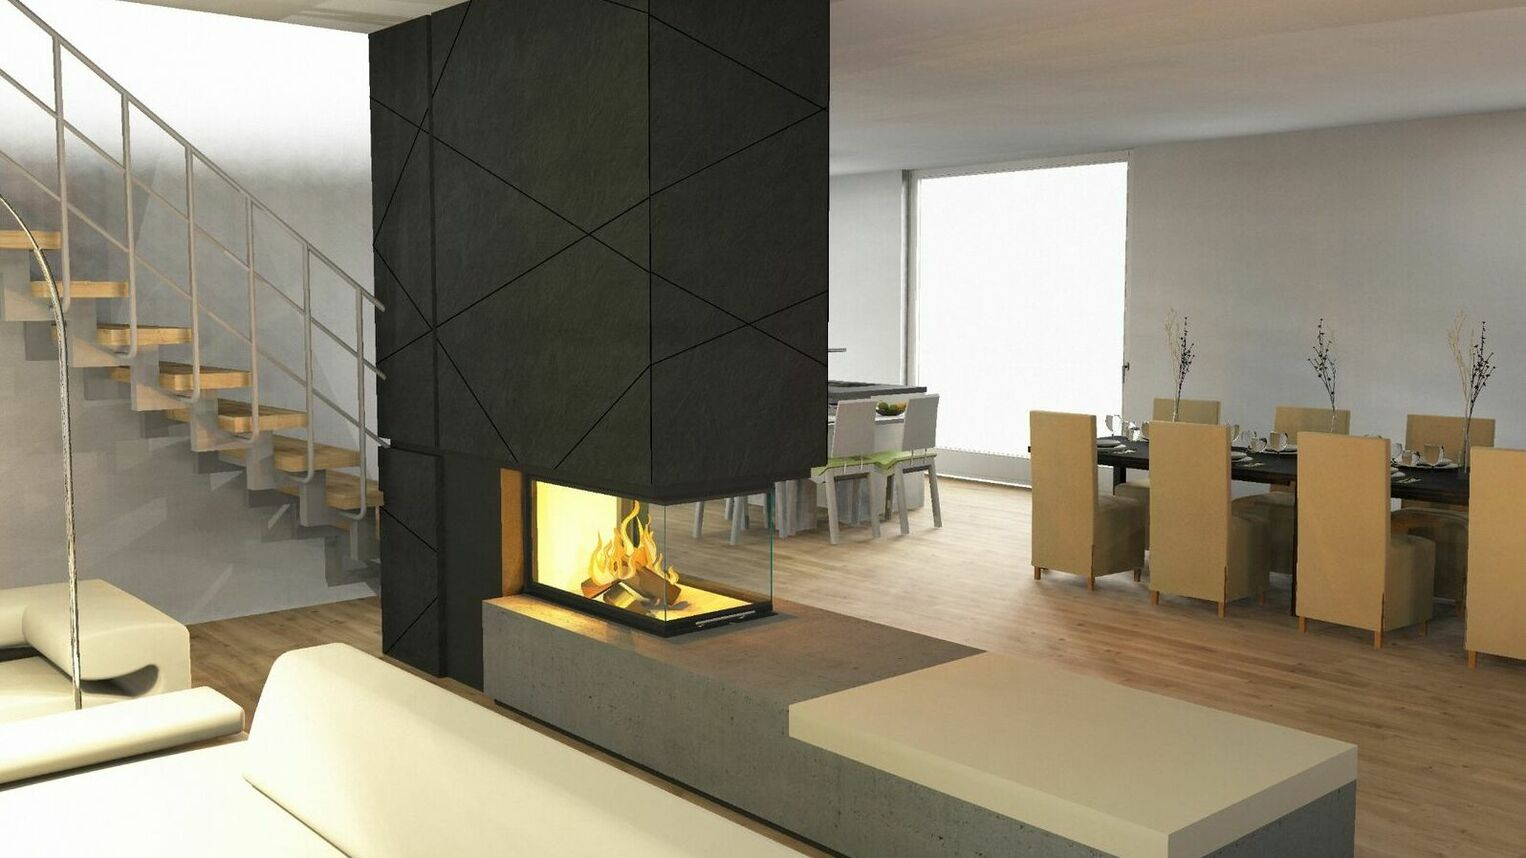 Planning for a panoramic fireplace